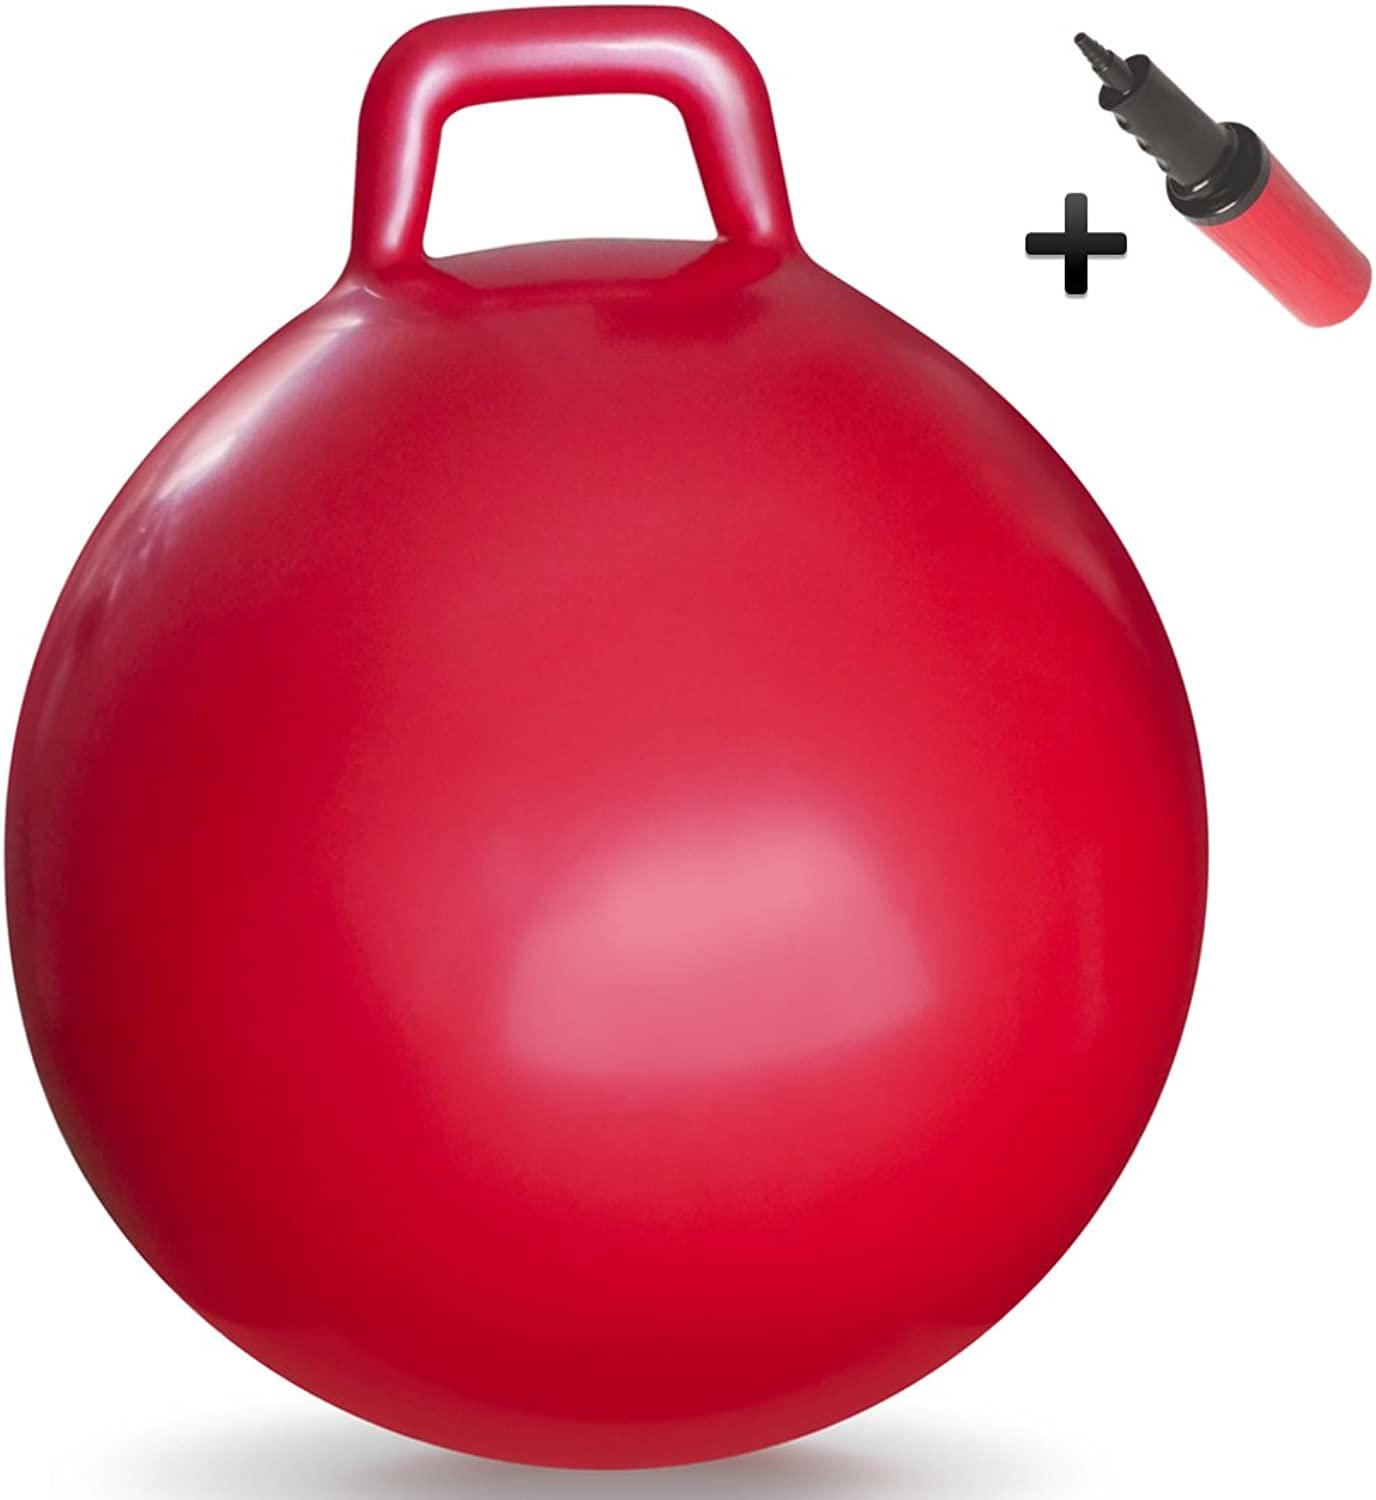 WALIKI Toys Hopper Ball for Kids Ages 36 (Hippity Hop Ball, Hopping Ball, Bouncy Ball with Handles, Sit & Bounce, Kangaroo Bouncer, Jumping Ball, 18 Inches, Red, Pump Included)